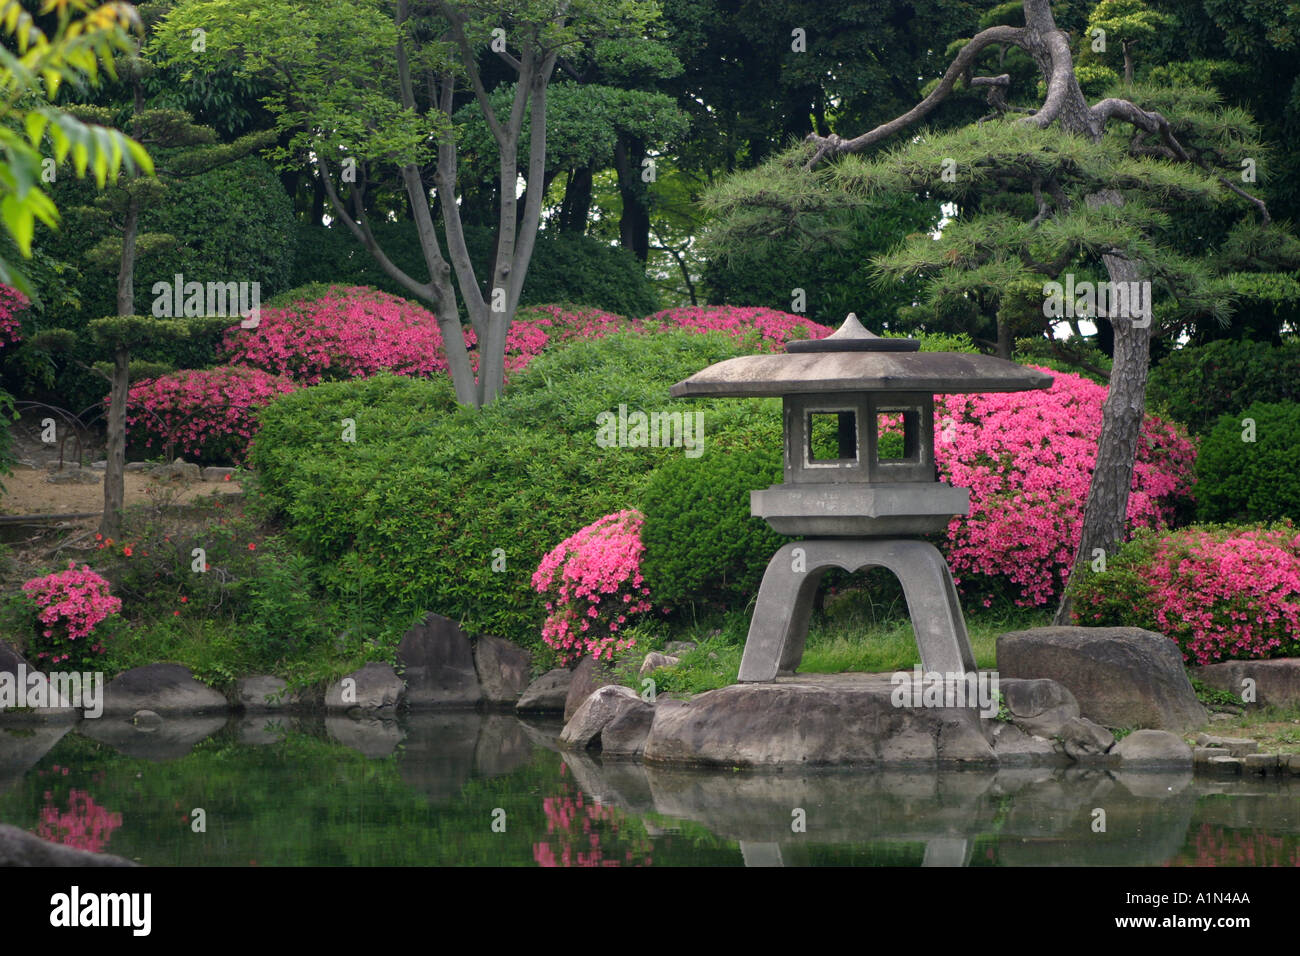 Japanese Garden Plants Typical Stone Lantern With Bright Pink Plants In A Traditional